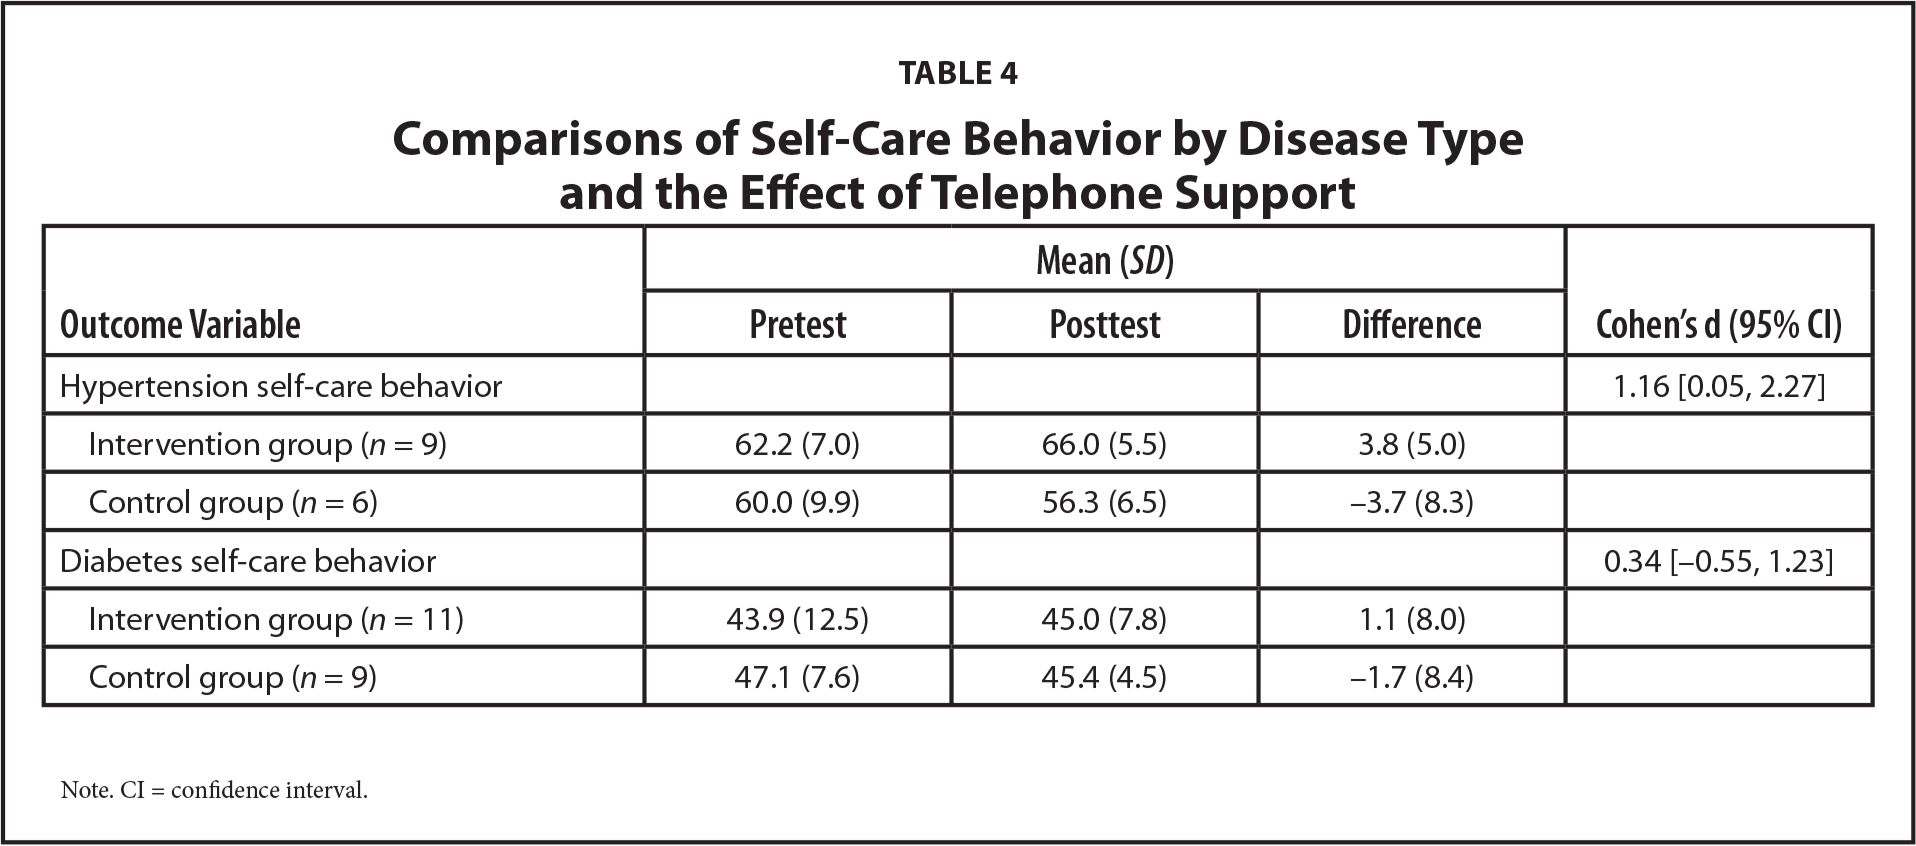 Comparisons of Self-Care Behavior by Disease Type and the Effect of Telephone Support